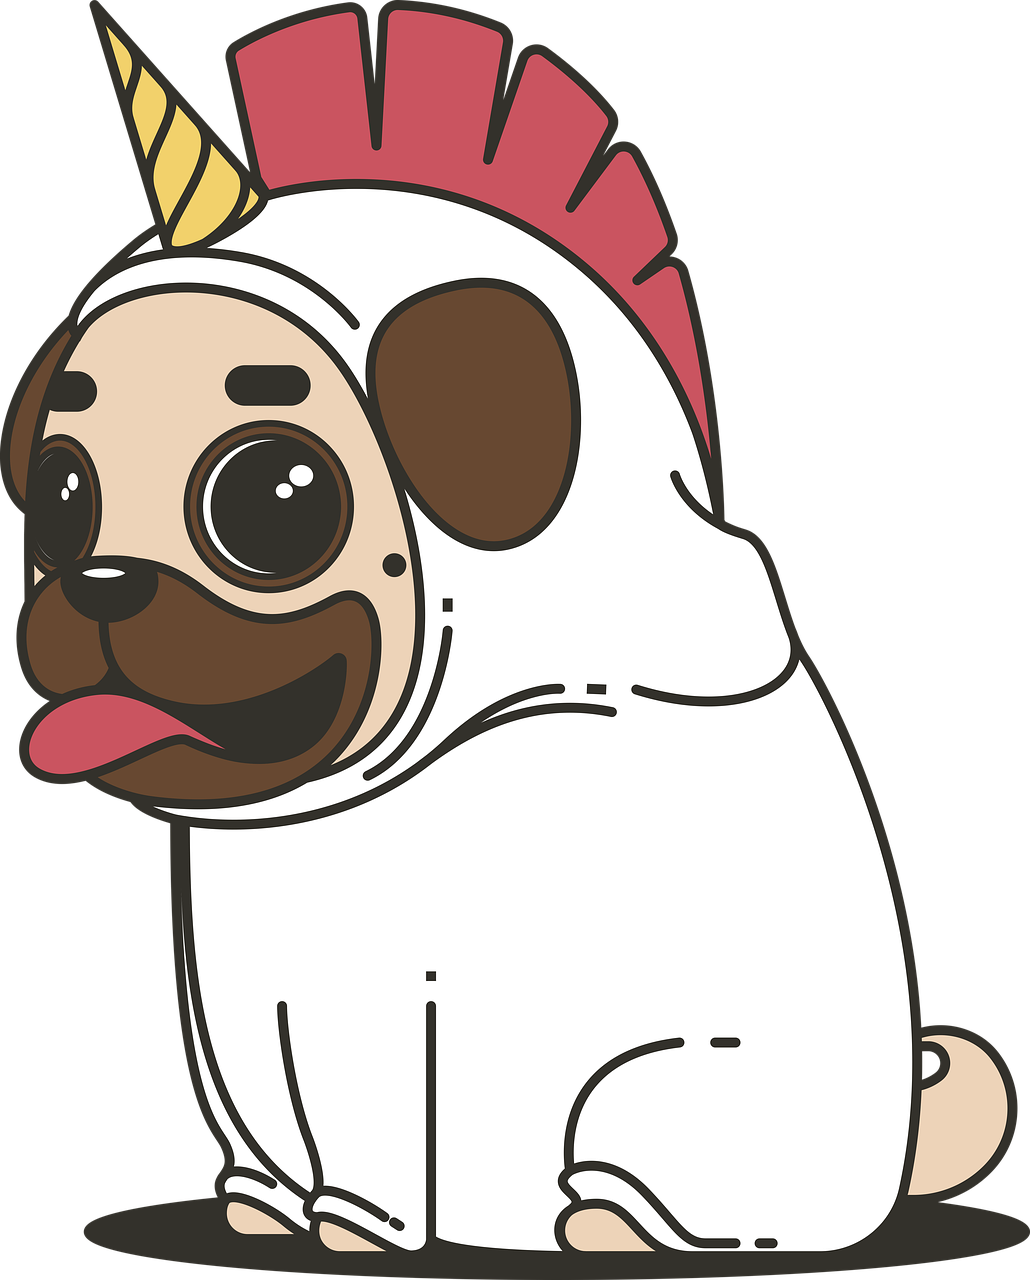 png black and white download Free image on pixabay. Silly clipart dog